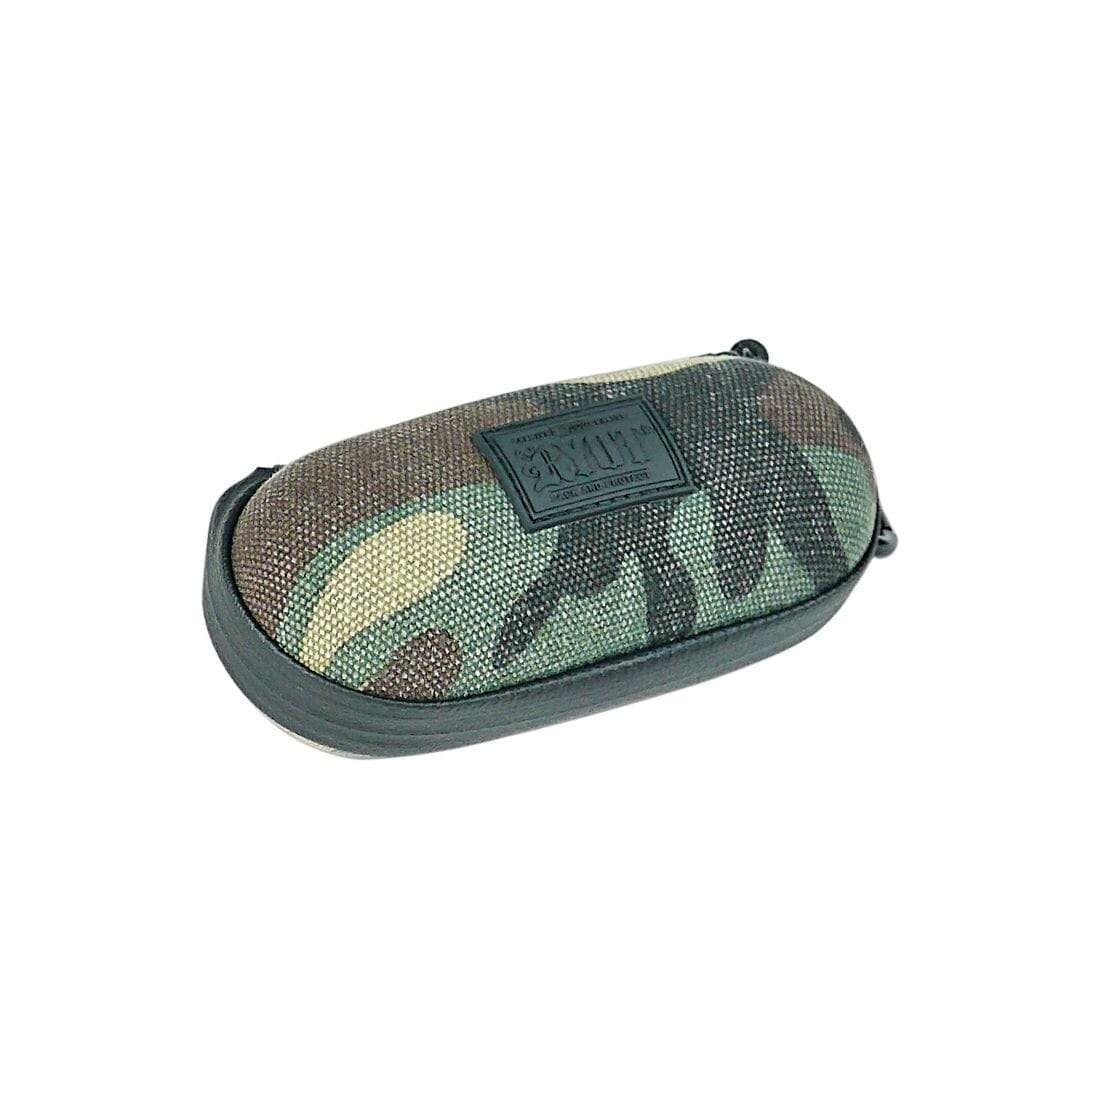 SmellSafe Small HardCase in Camo - Everything But The Plant